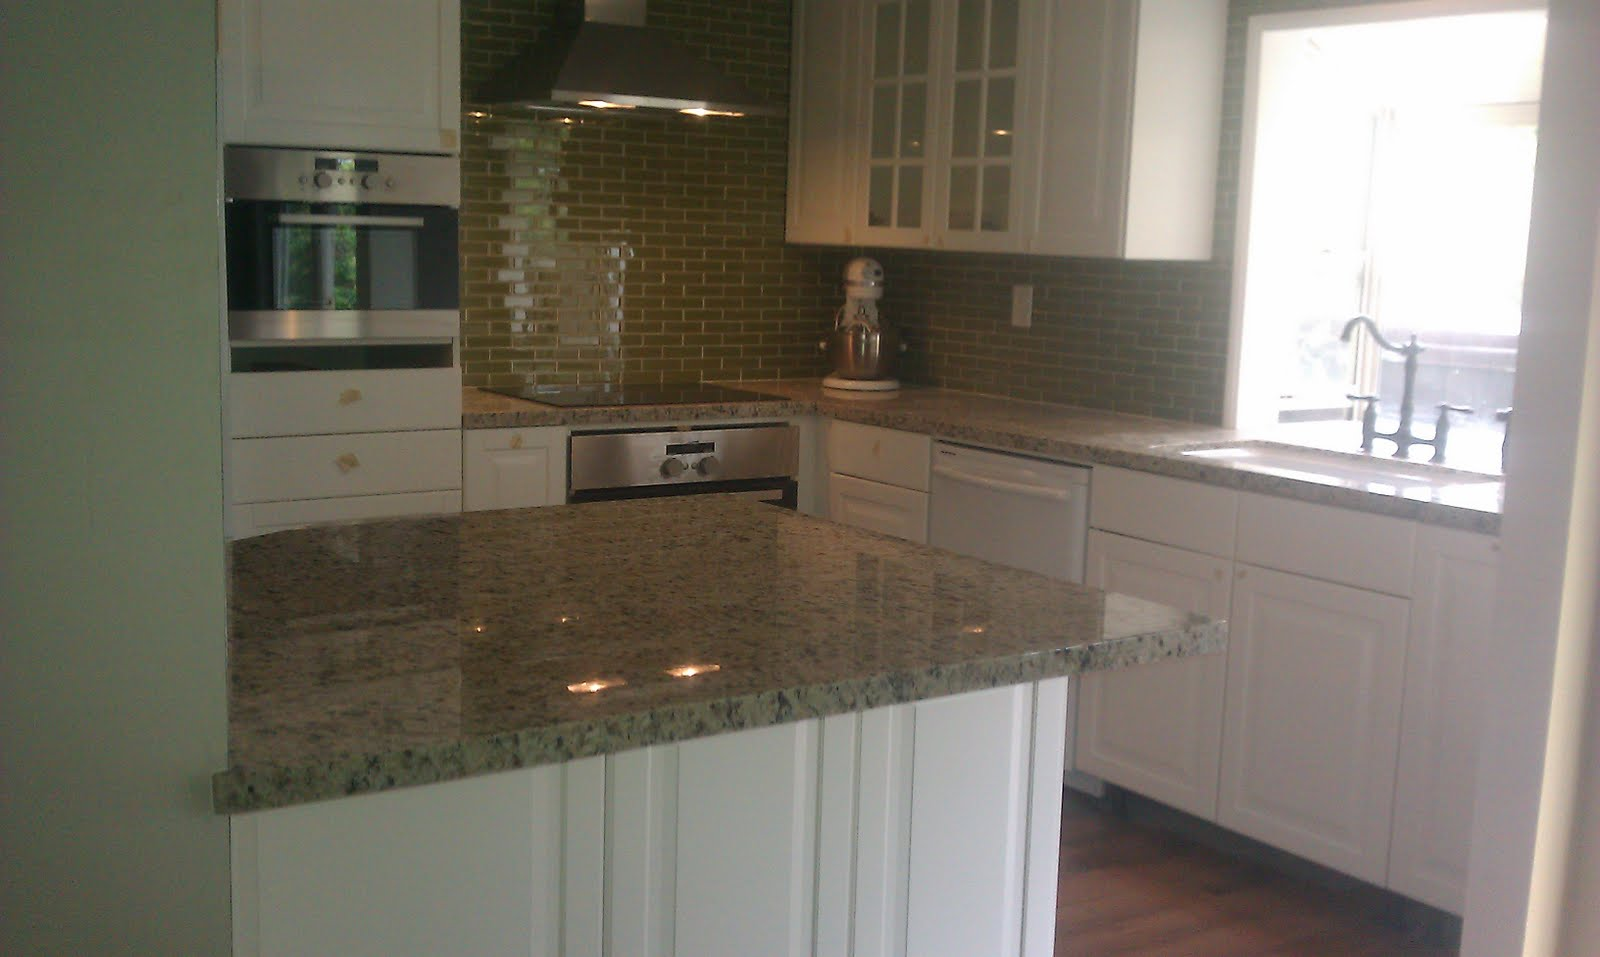 Lastest To Your Immediate Left You Find The First Of Five Bedroom Suites With Its Own Full Bathroom Next To That Is The Entrance  All Stainless Steel Appliances And Granite Counters On Custom Cabinets Then You Have The Den With Another Fireplace And